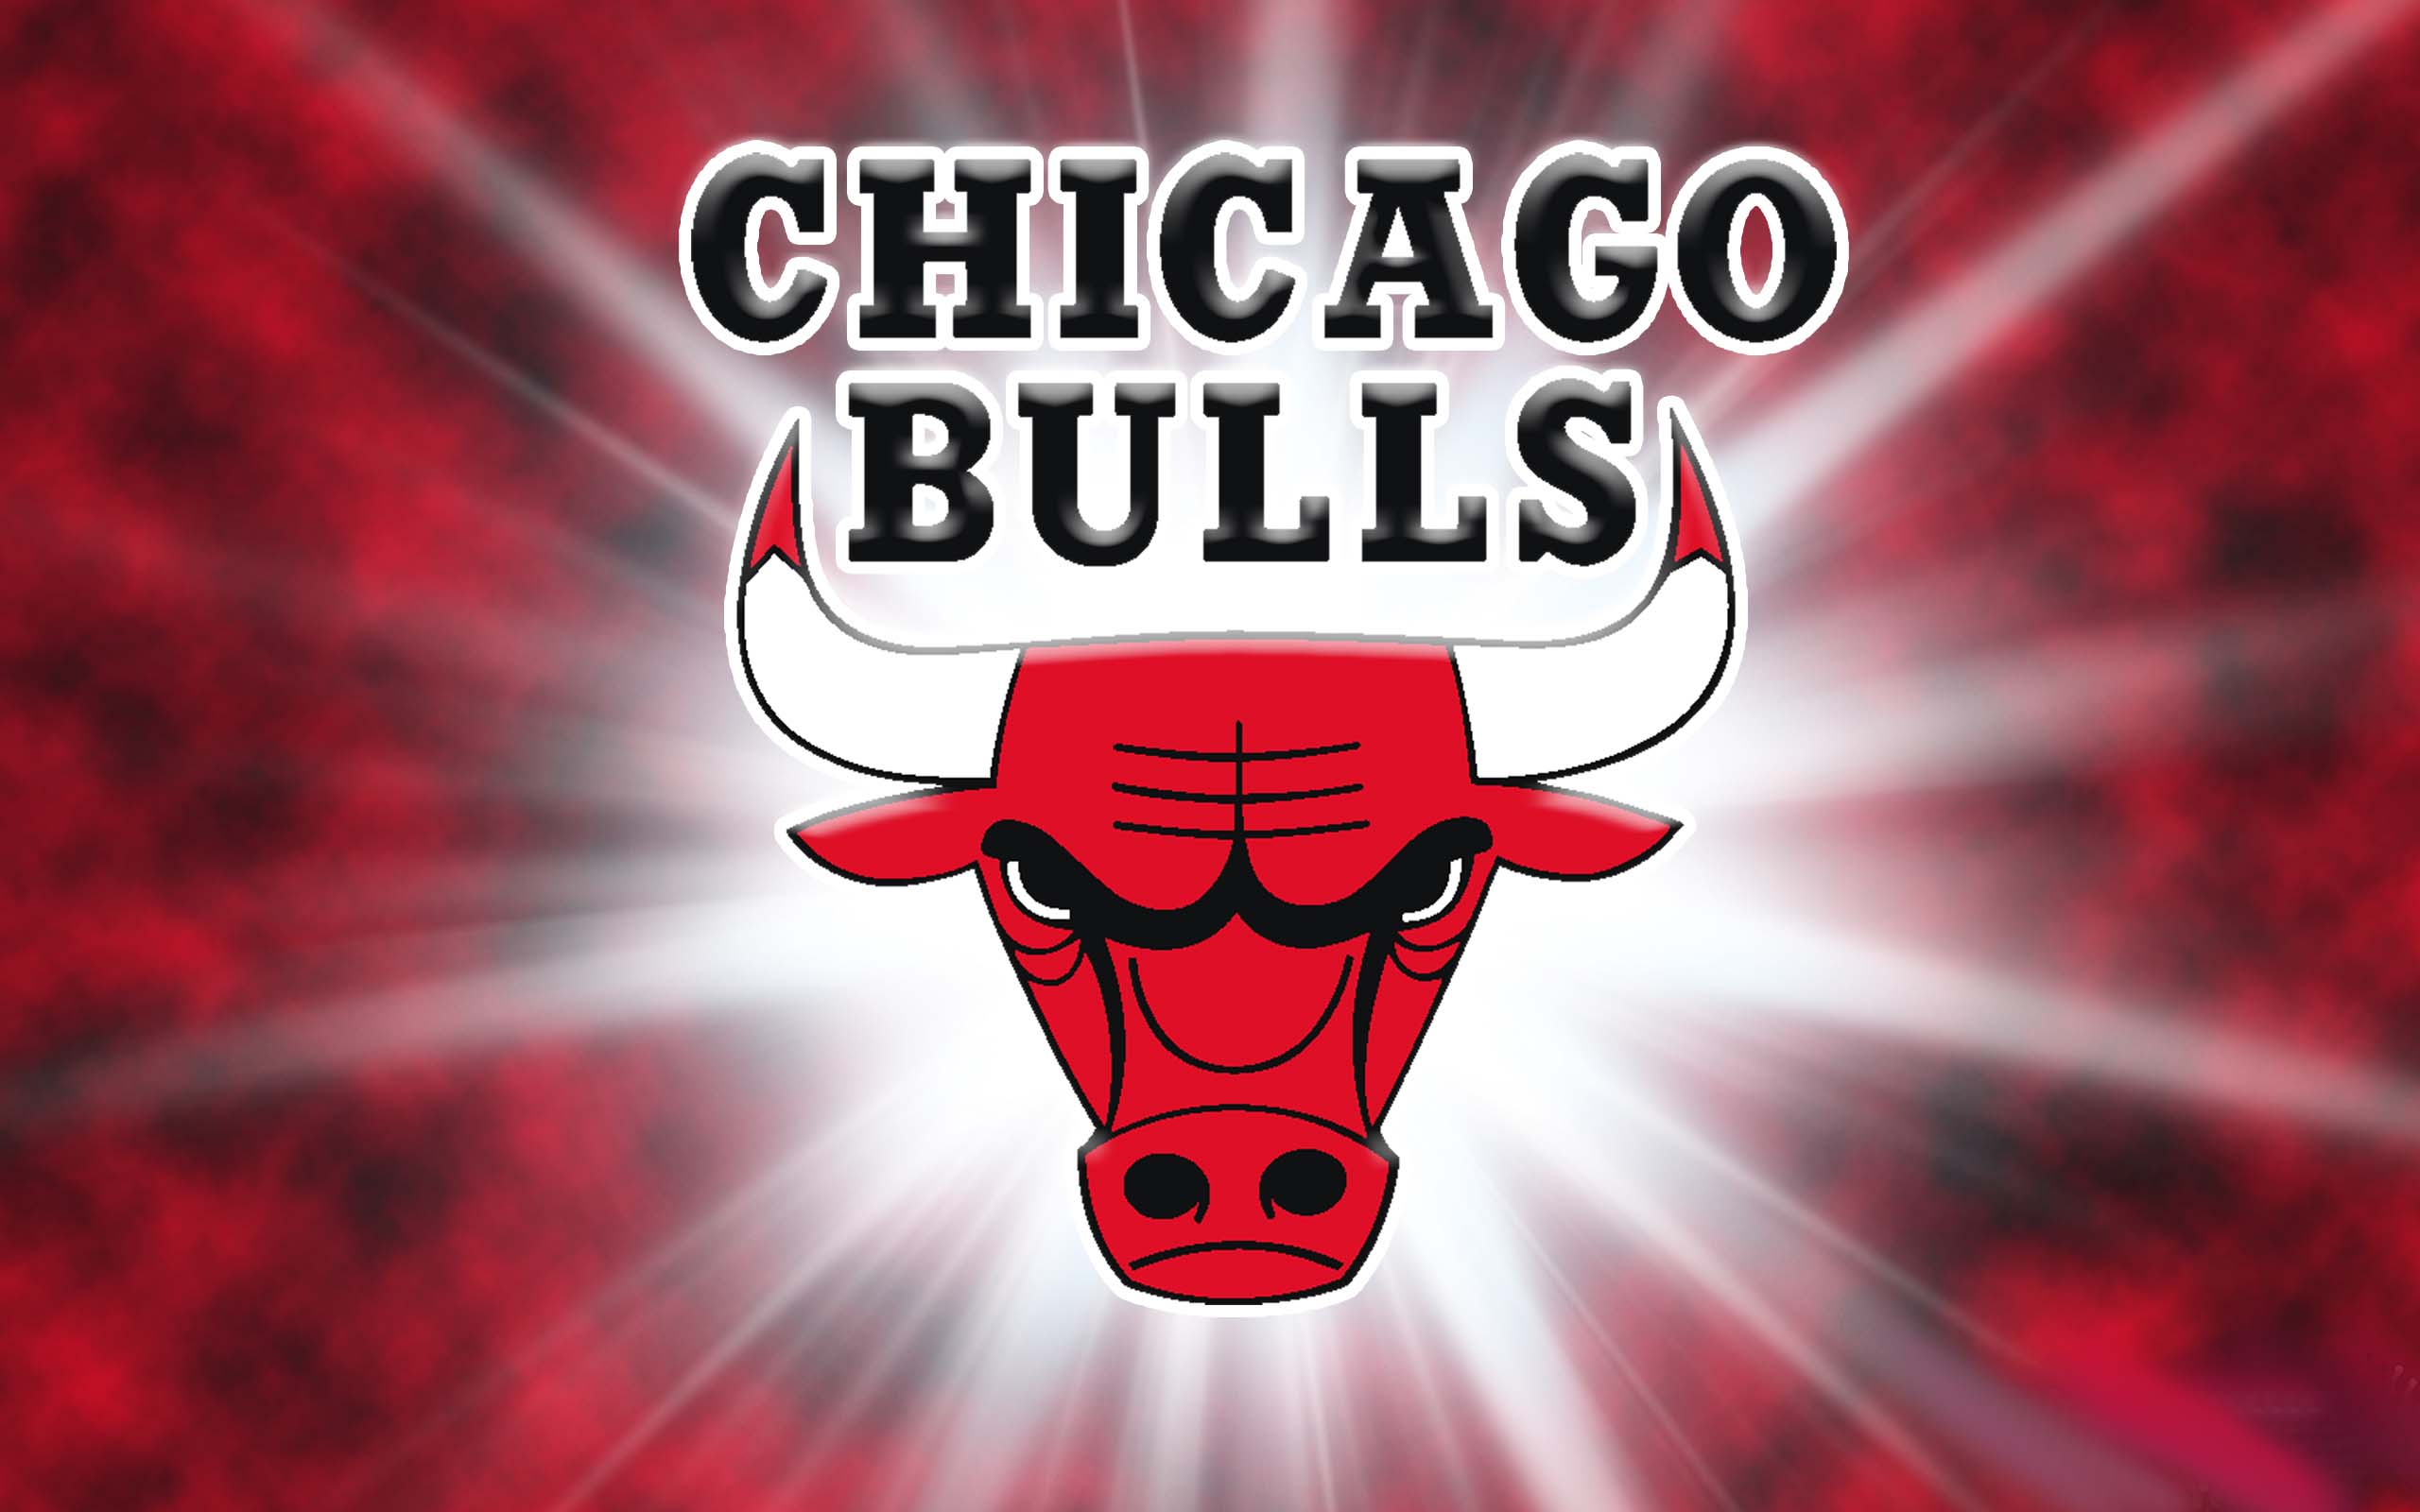 Chicago Bulls HD Wallpapers Poster Chicago Bulls Logo Black 2560x1600